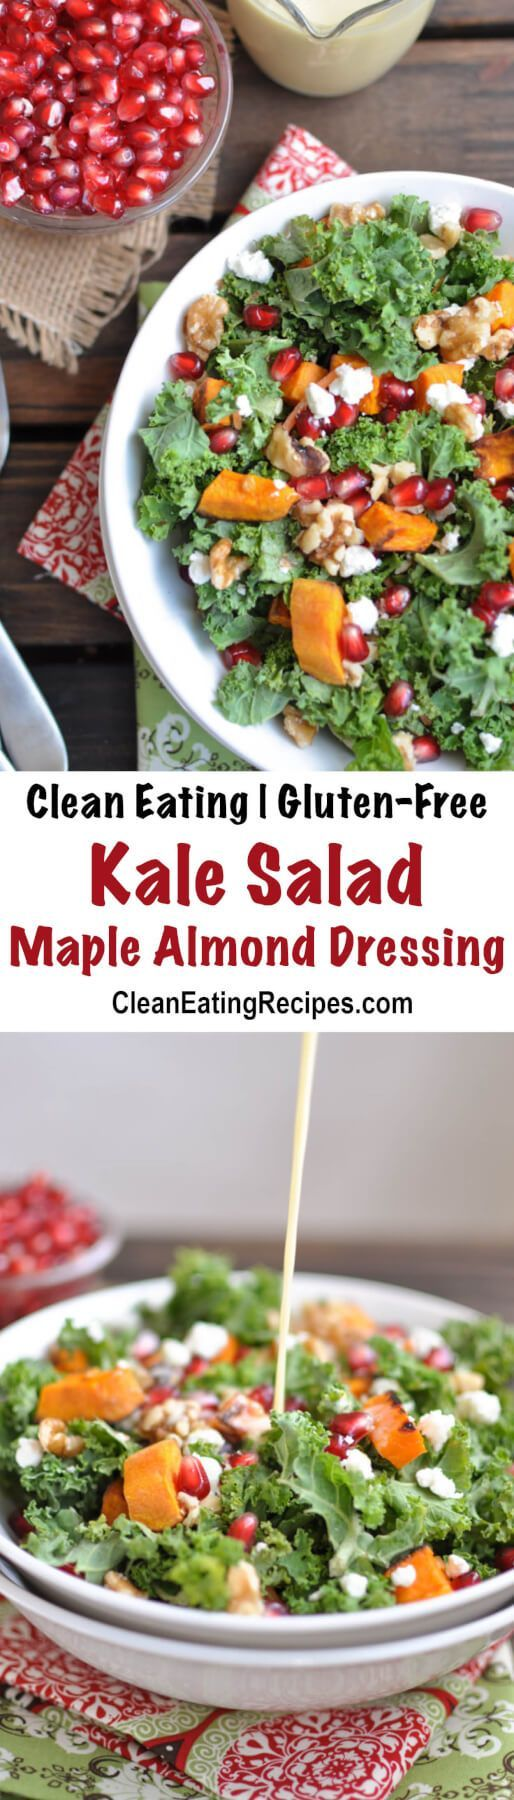 I love the sweet and tangy variety in this Clean Eating kale salad recipe. My favorites are the roasted sweet potatoes, goat cheese, pomegranates, goat cheese and walnuts. The maple walnut dressing helps pull it together.